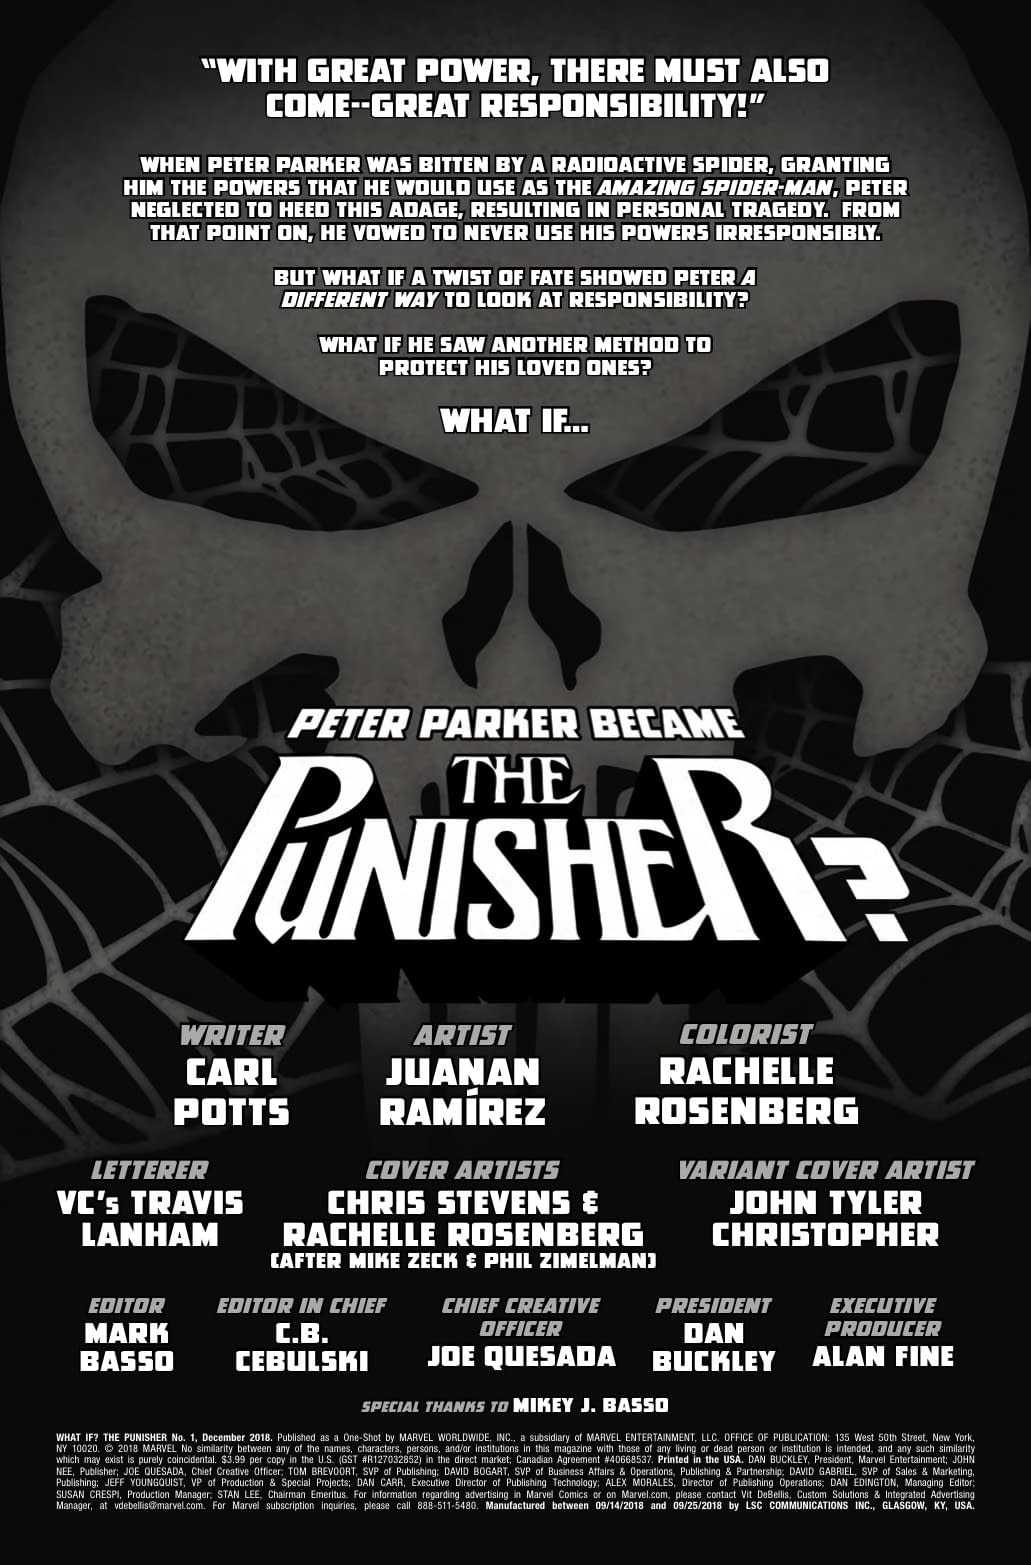 Is What If? Punisher Basically the Snyder Cut of Spider-Man?